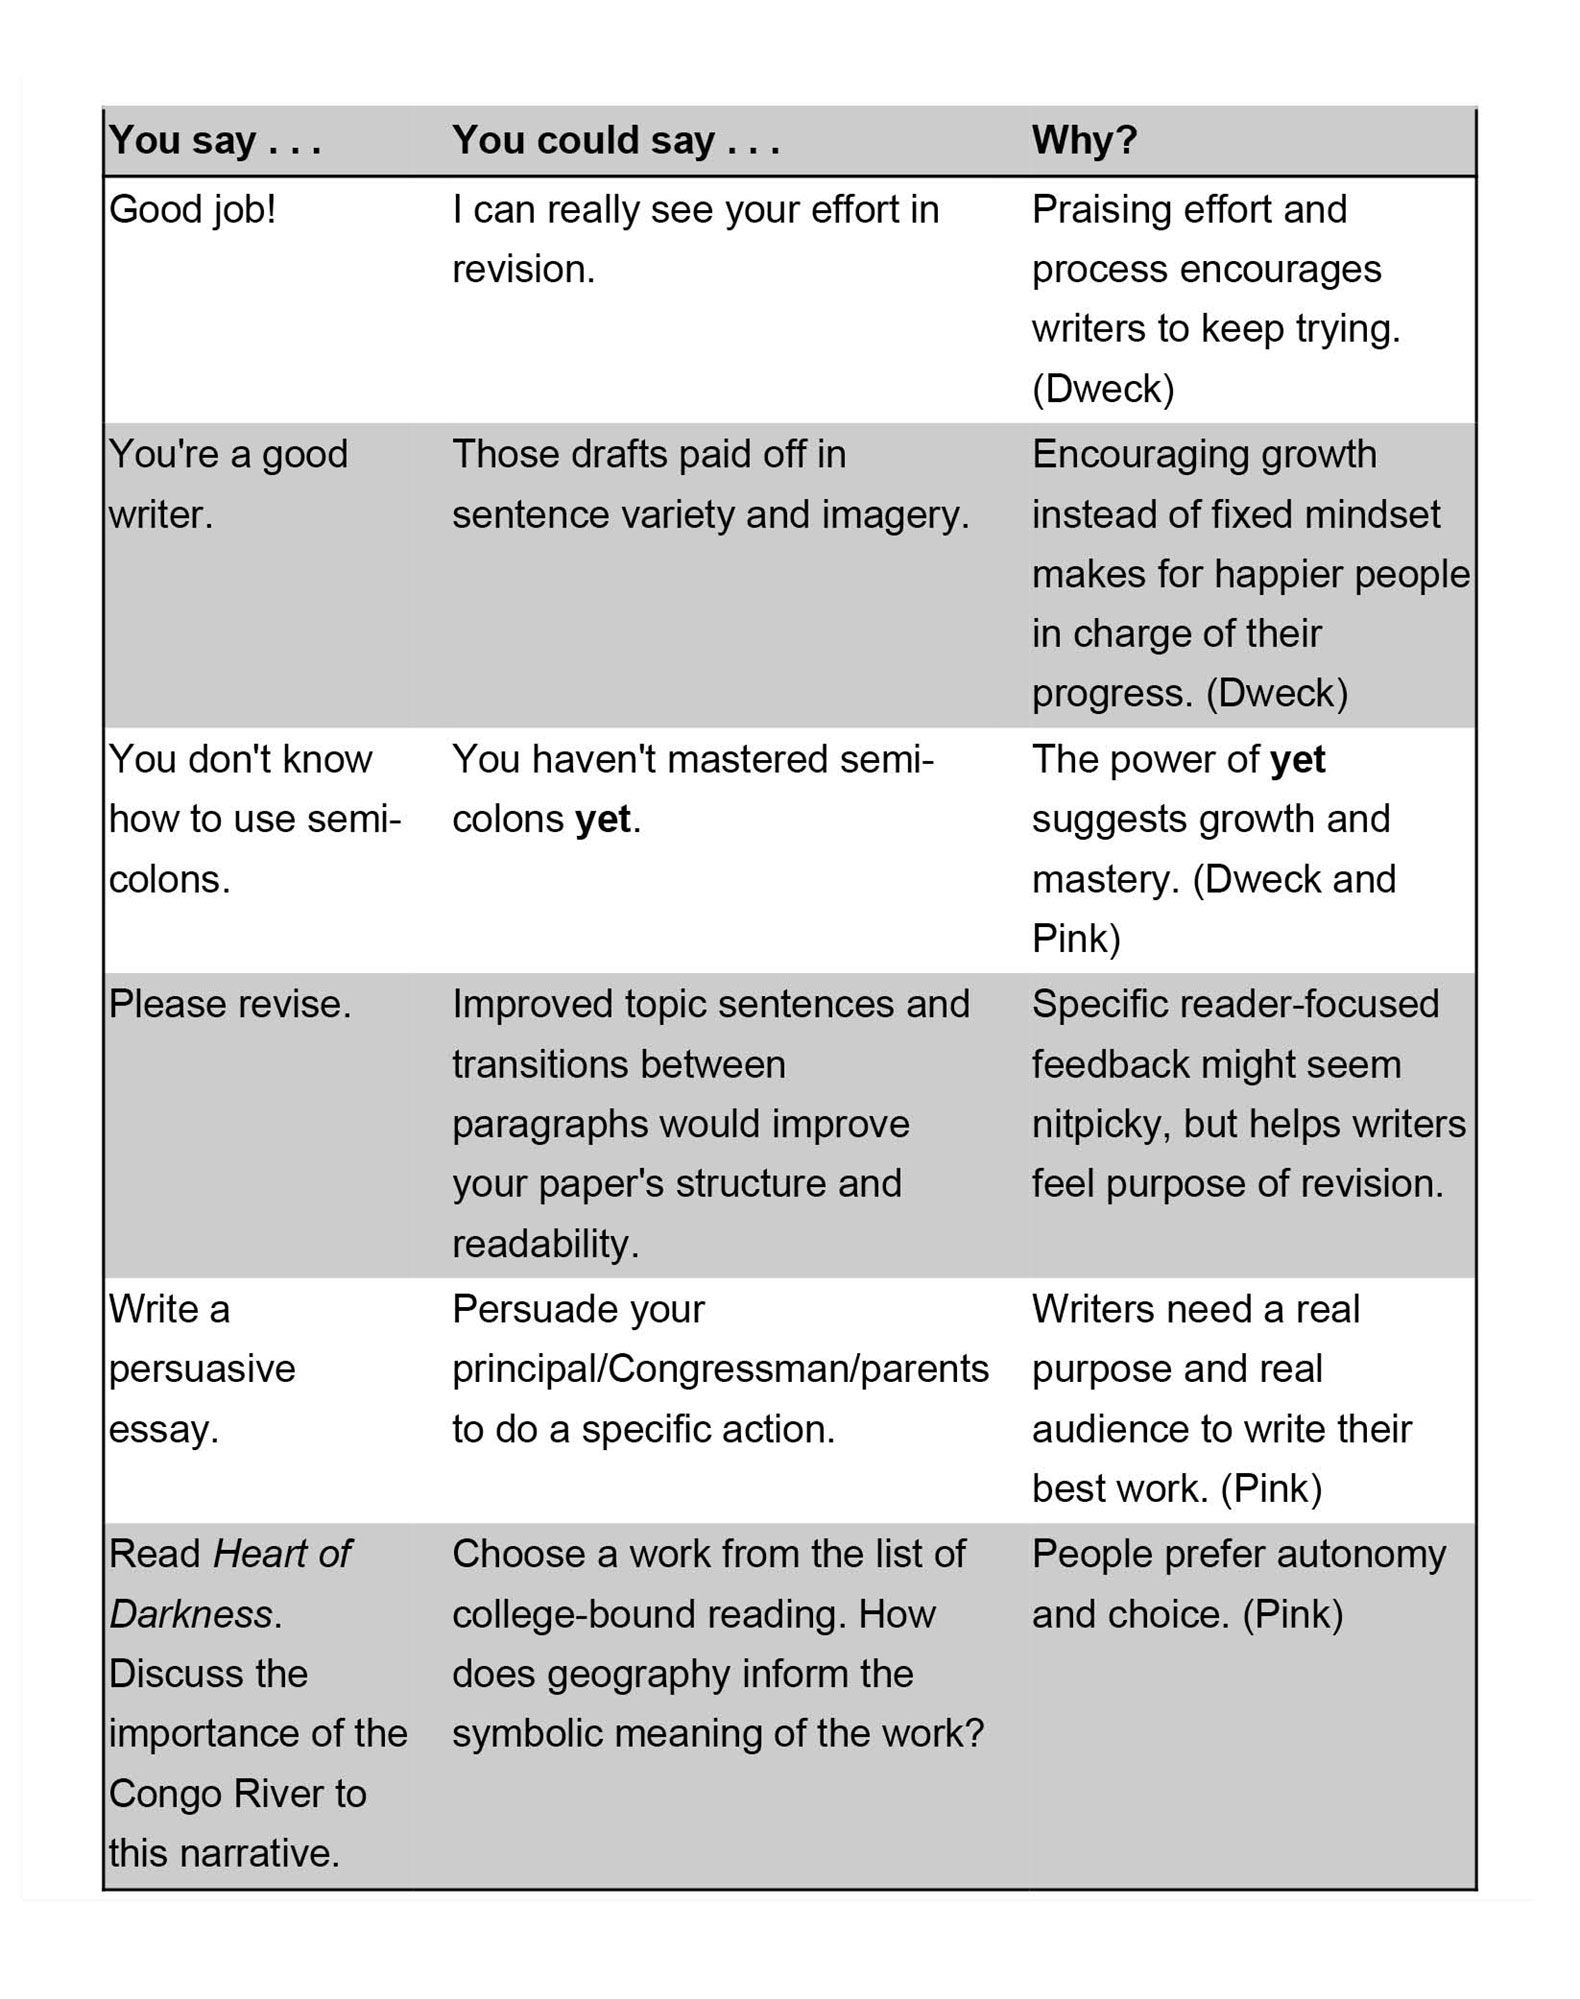 Nurturing Intrinsic Motivation And Growth Mindset In Writing